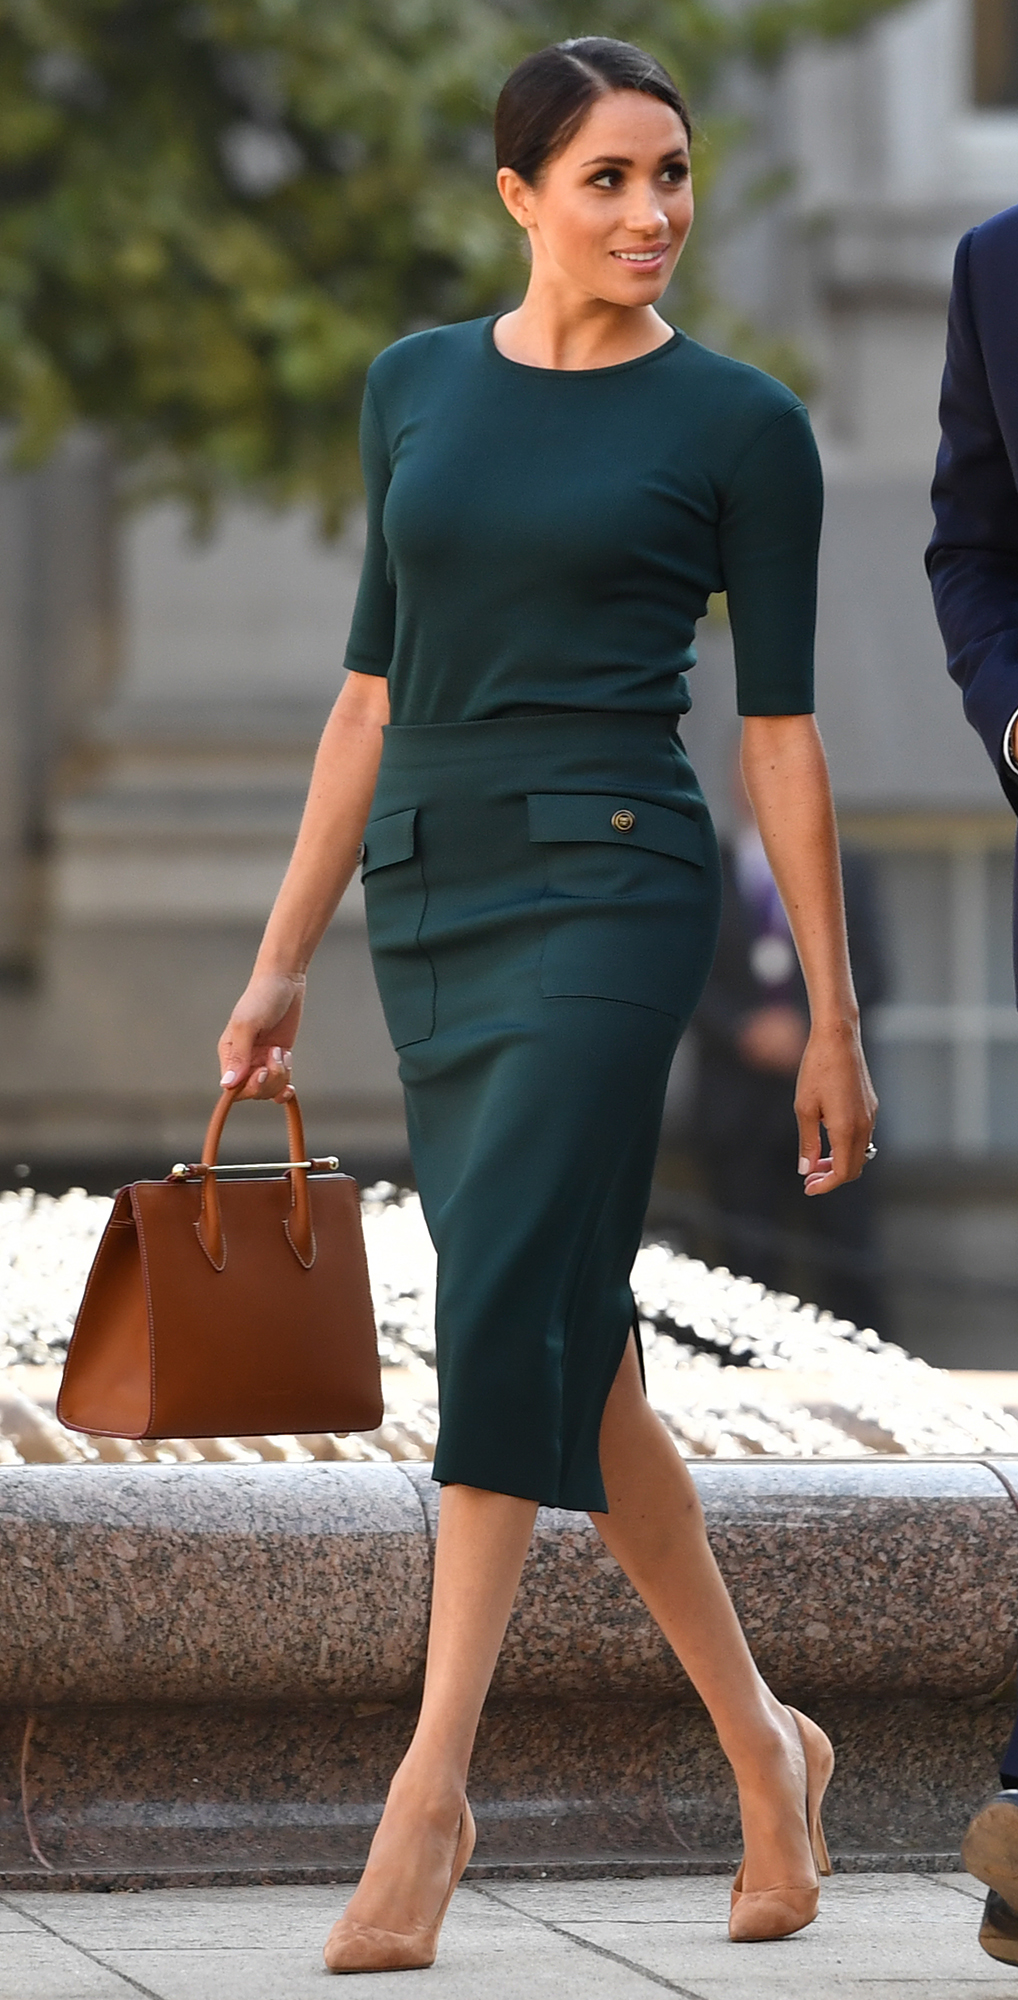 """Everything Duchess Meghan Has Said About Her Diet and Fitness Tricks - What does Meghan (pictured again in Dublin on July 11, 2018) reach for when she needs energy? """"Definitely a green juice. I mean trying to go for coffee or things like that only end up hurting you at the end,"""" she told Shape in a video interview during her Suits days."""